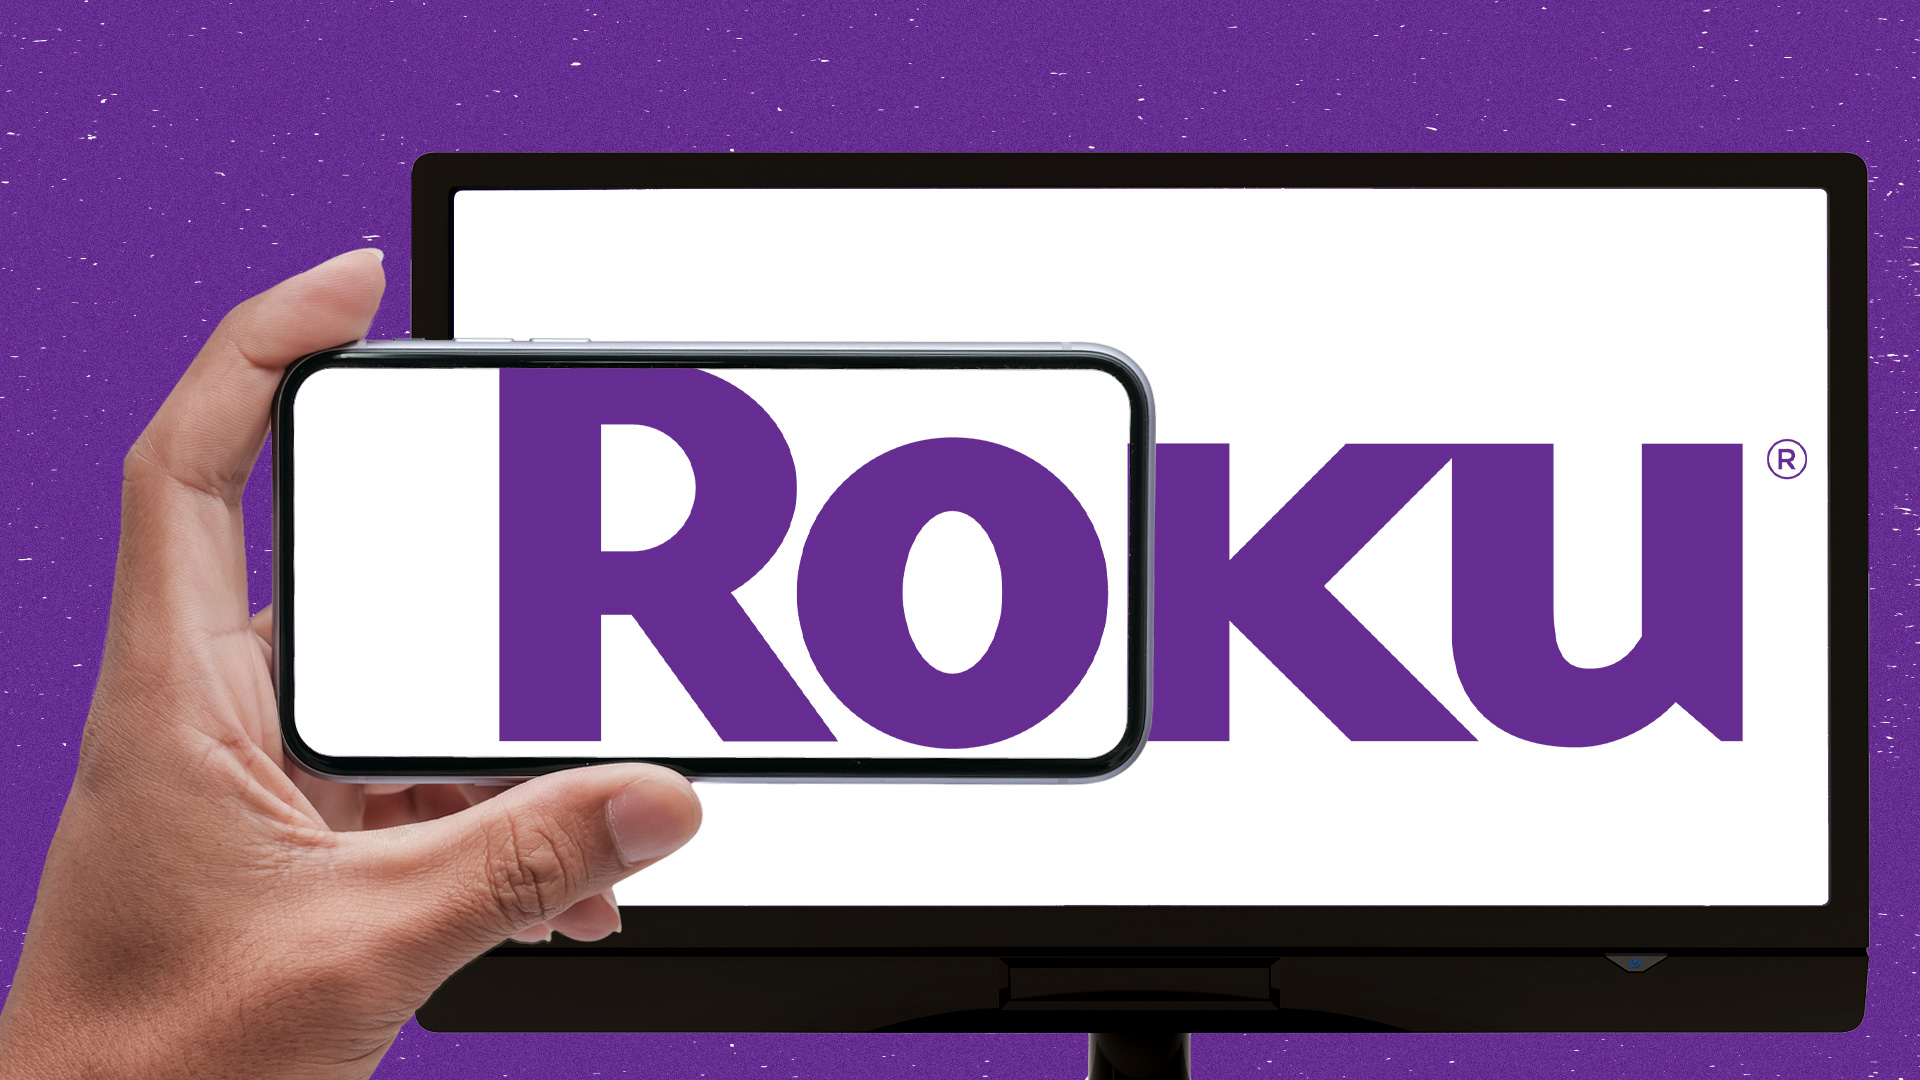 Roku logo on tablet and phone